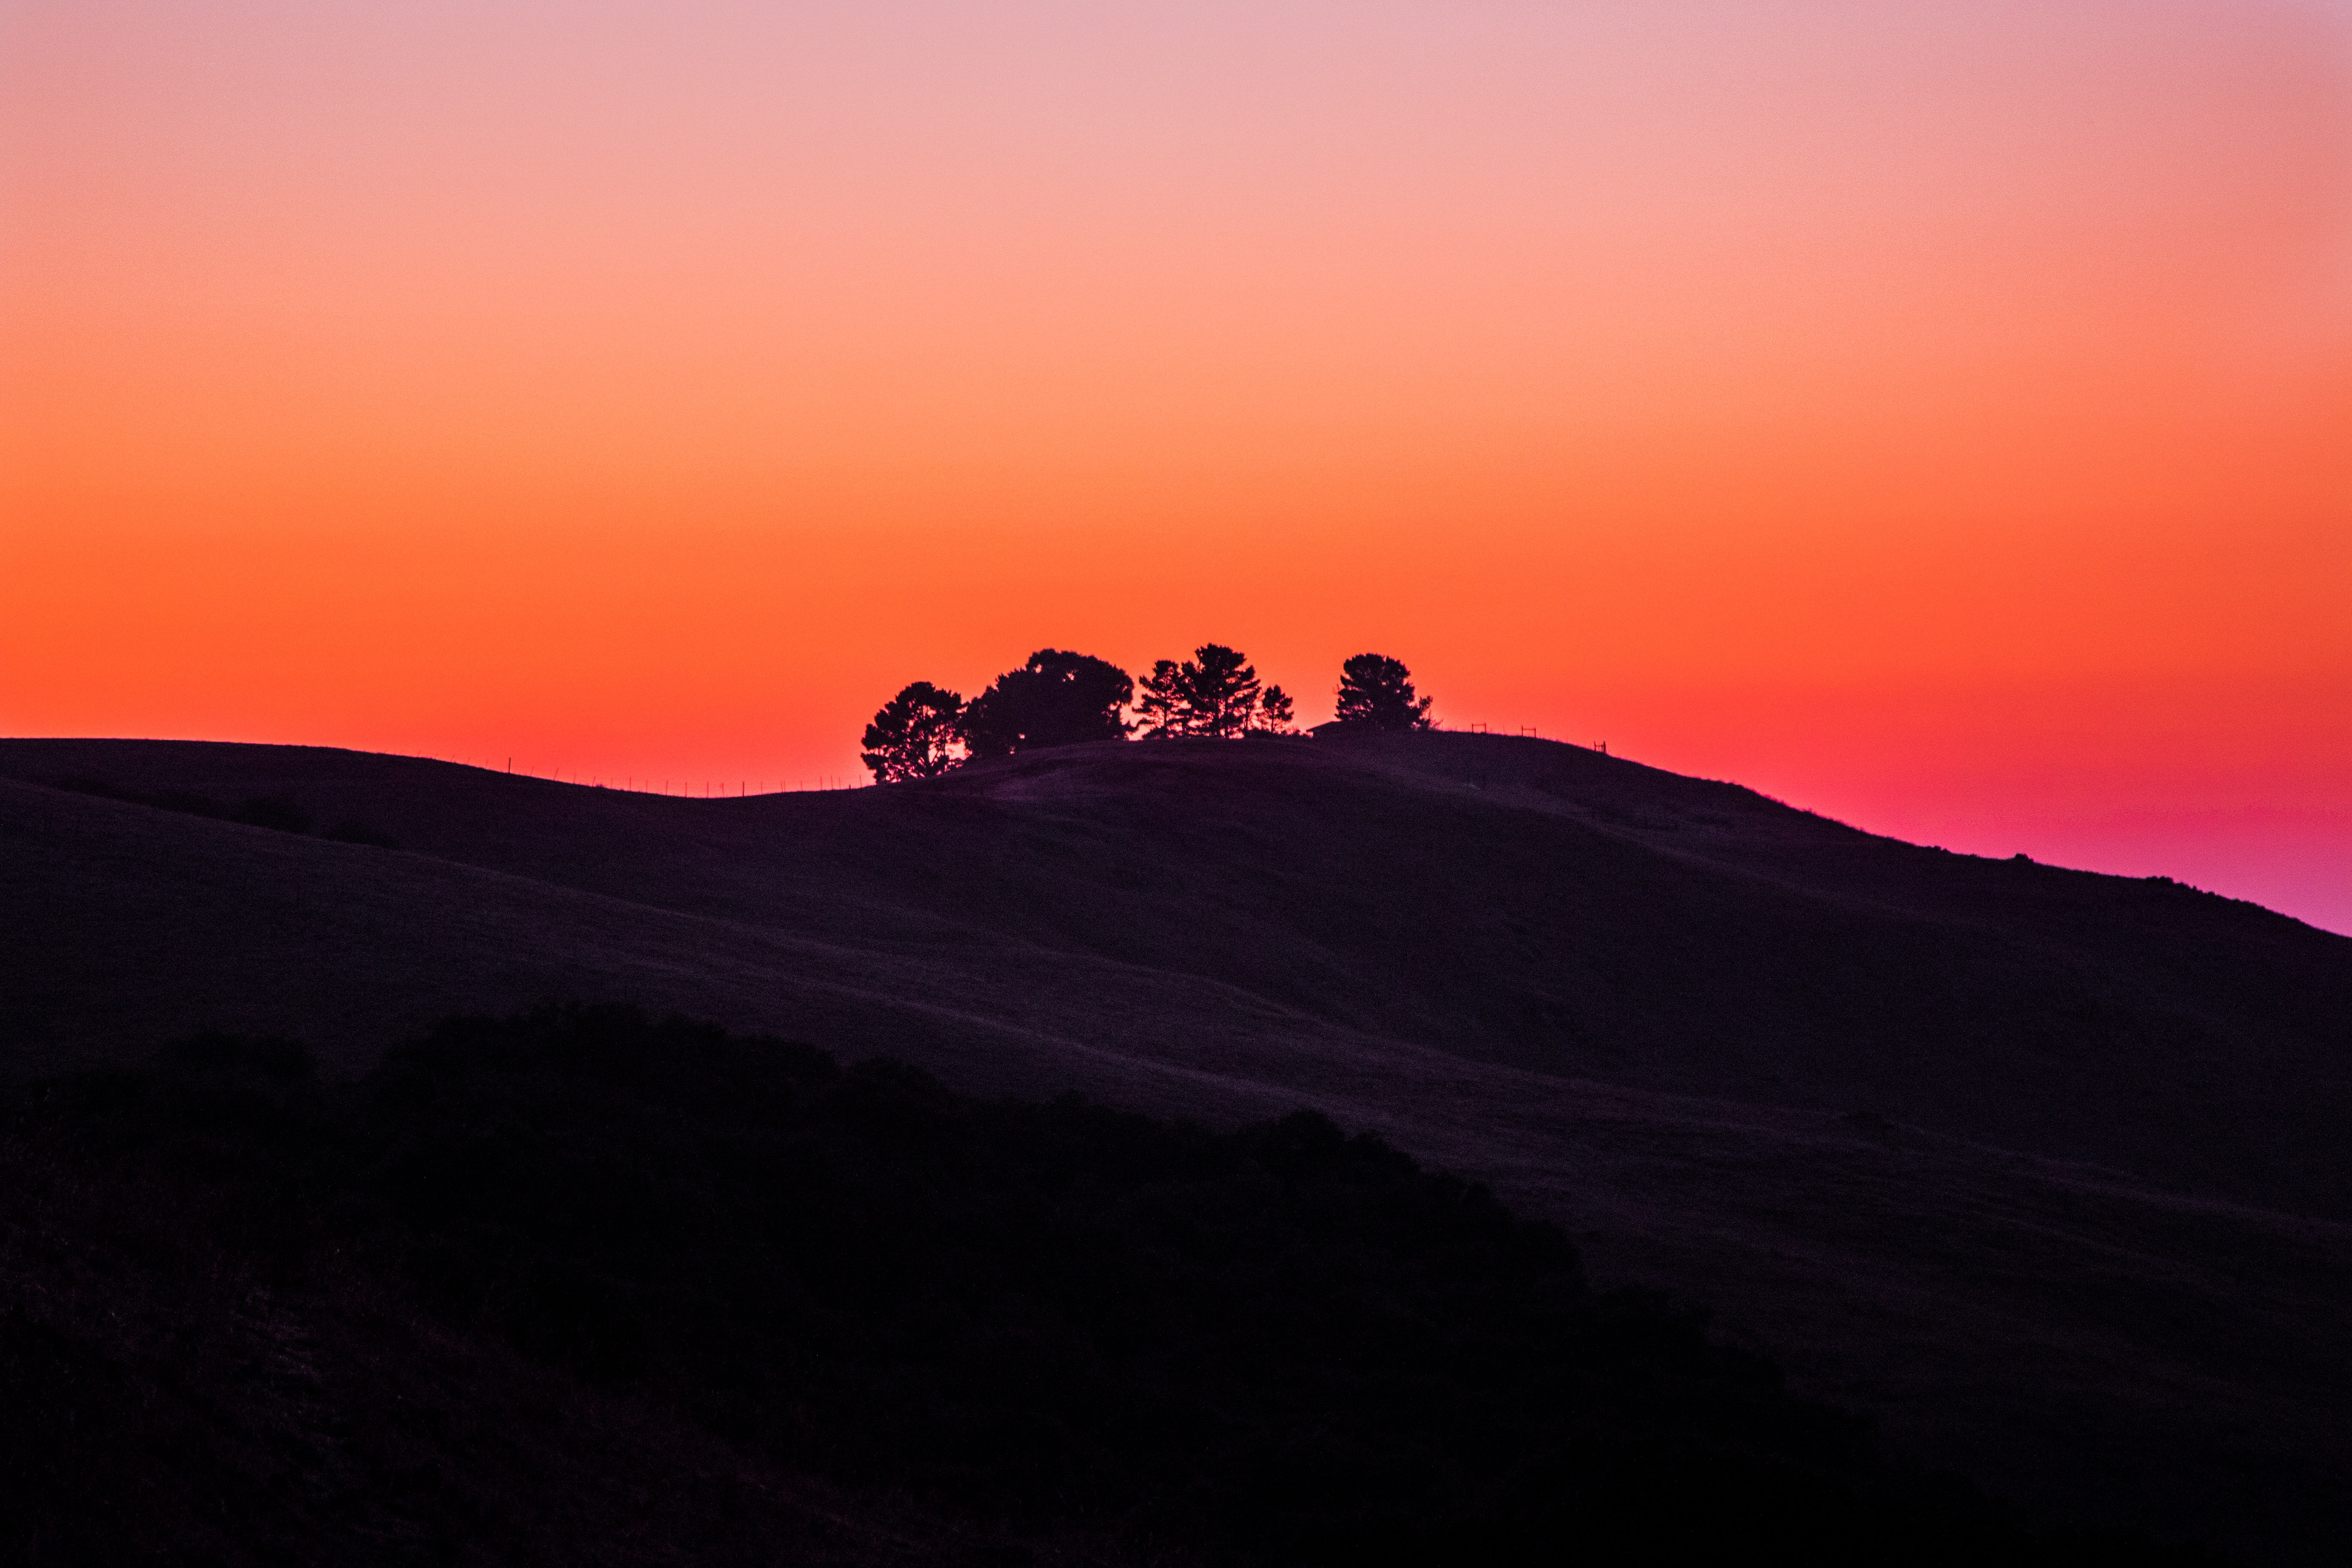 Colorful orange sky creates silhouettes at sunset